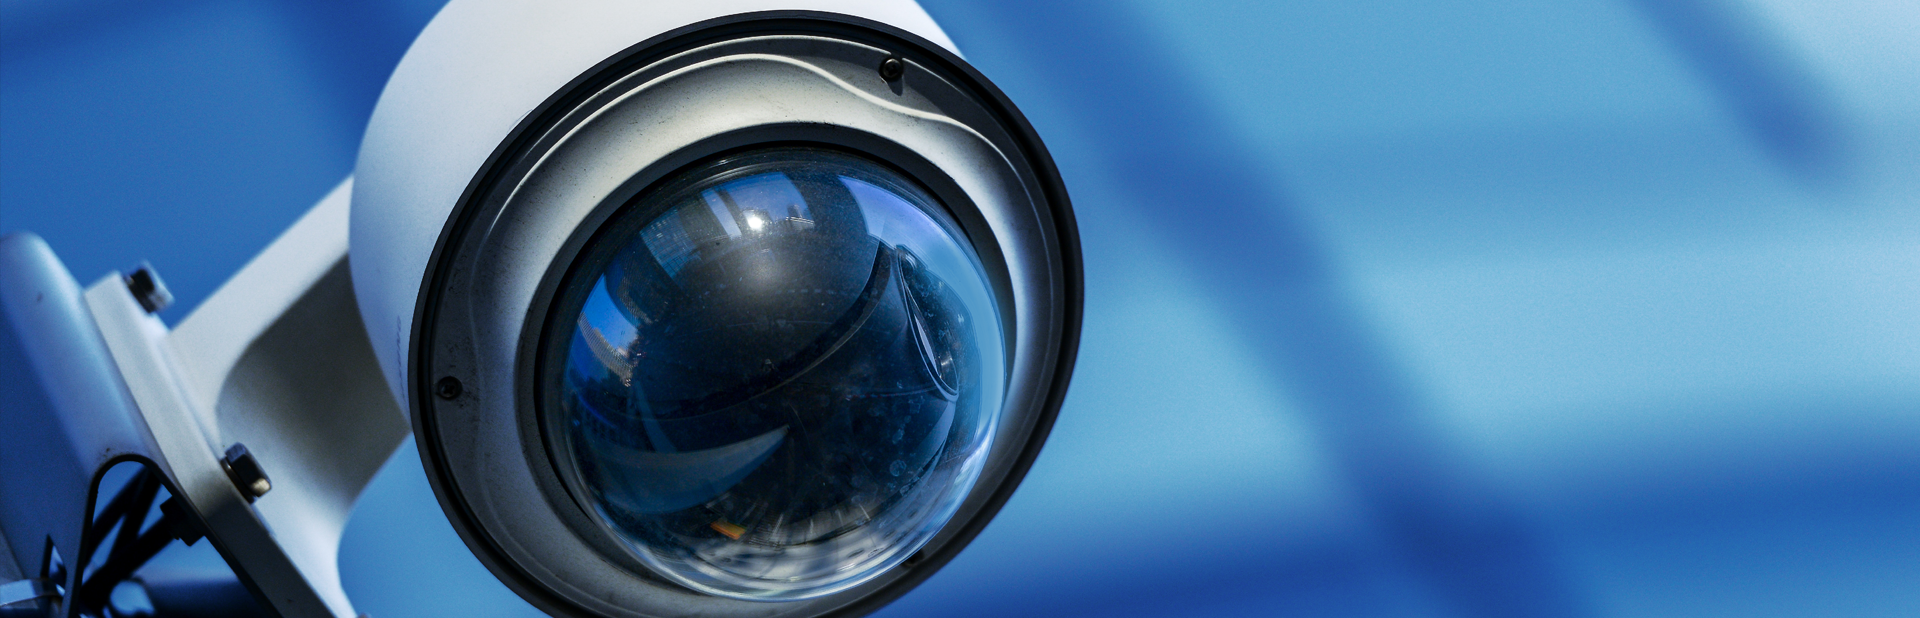 Few Tips & Tricks To Hire Security Systems Melbourne Today!